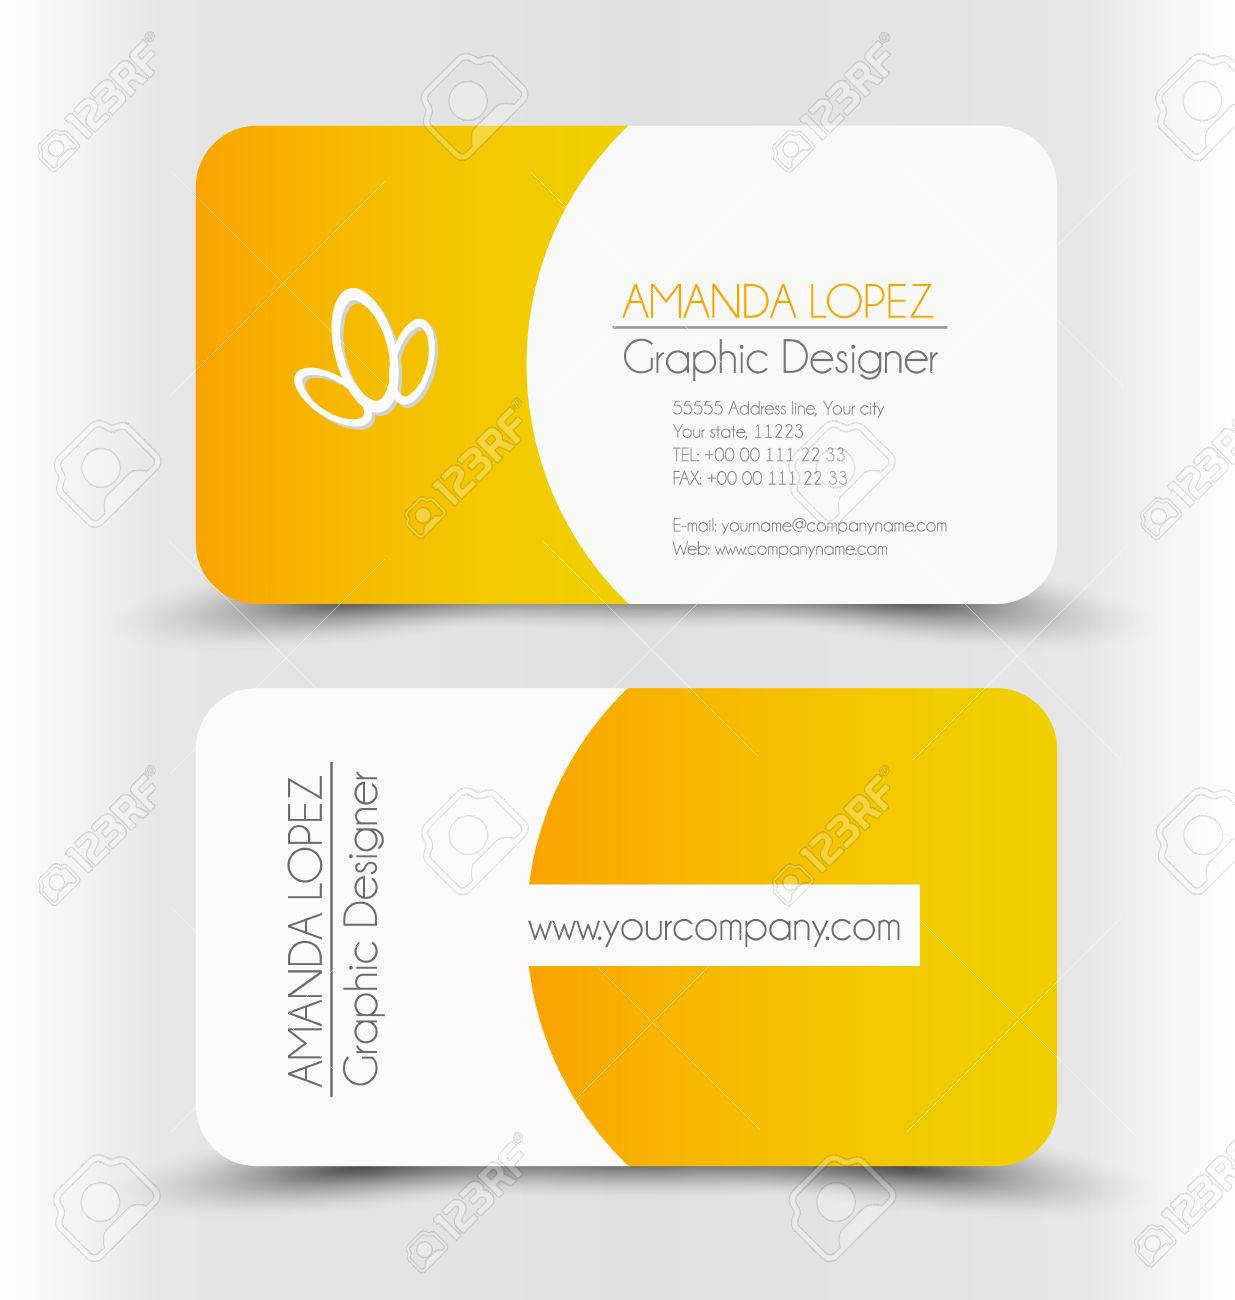 Quotes for business cards gallery free business cards realtor quotes for business cards choice image free business cards referral quotes for business cards gallery magicingreecefo Choice Image